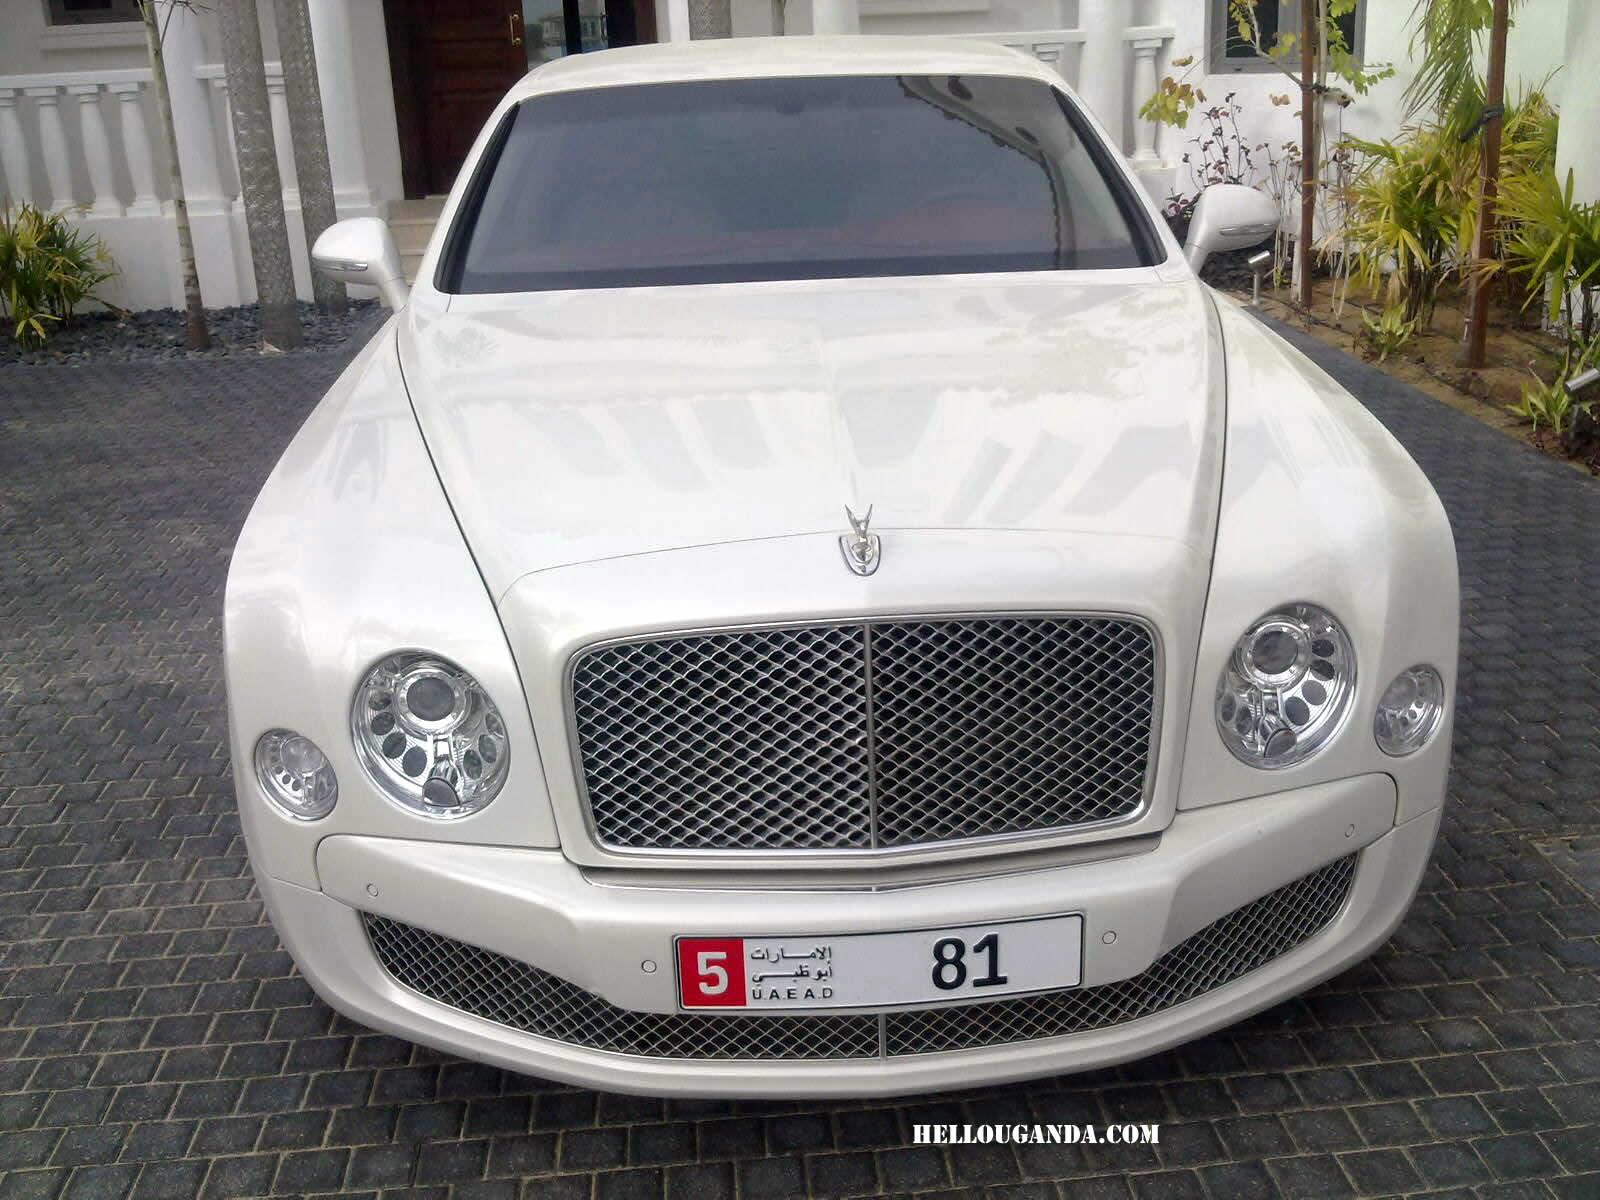 car flying bentley sport aaa for hire new spur luxury rental rent